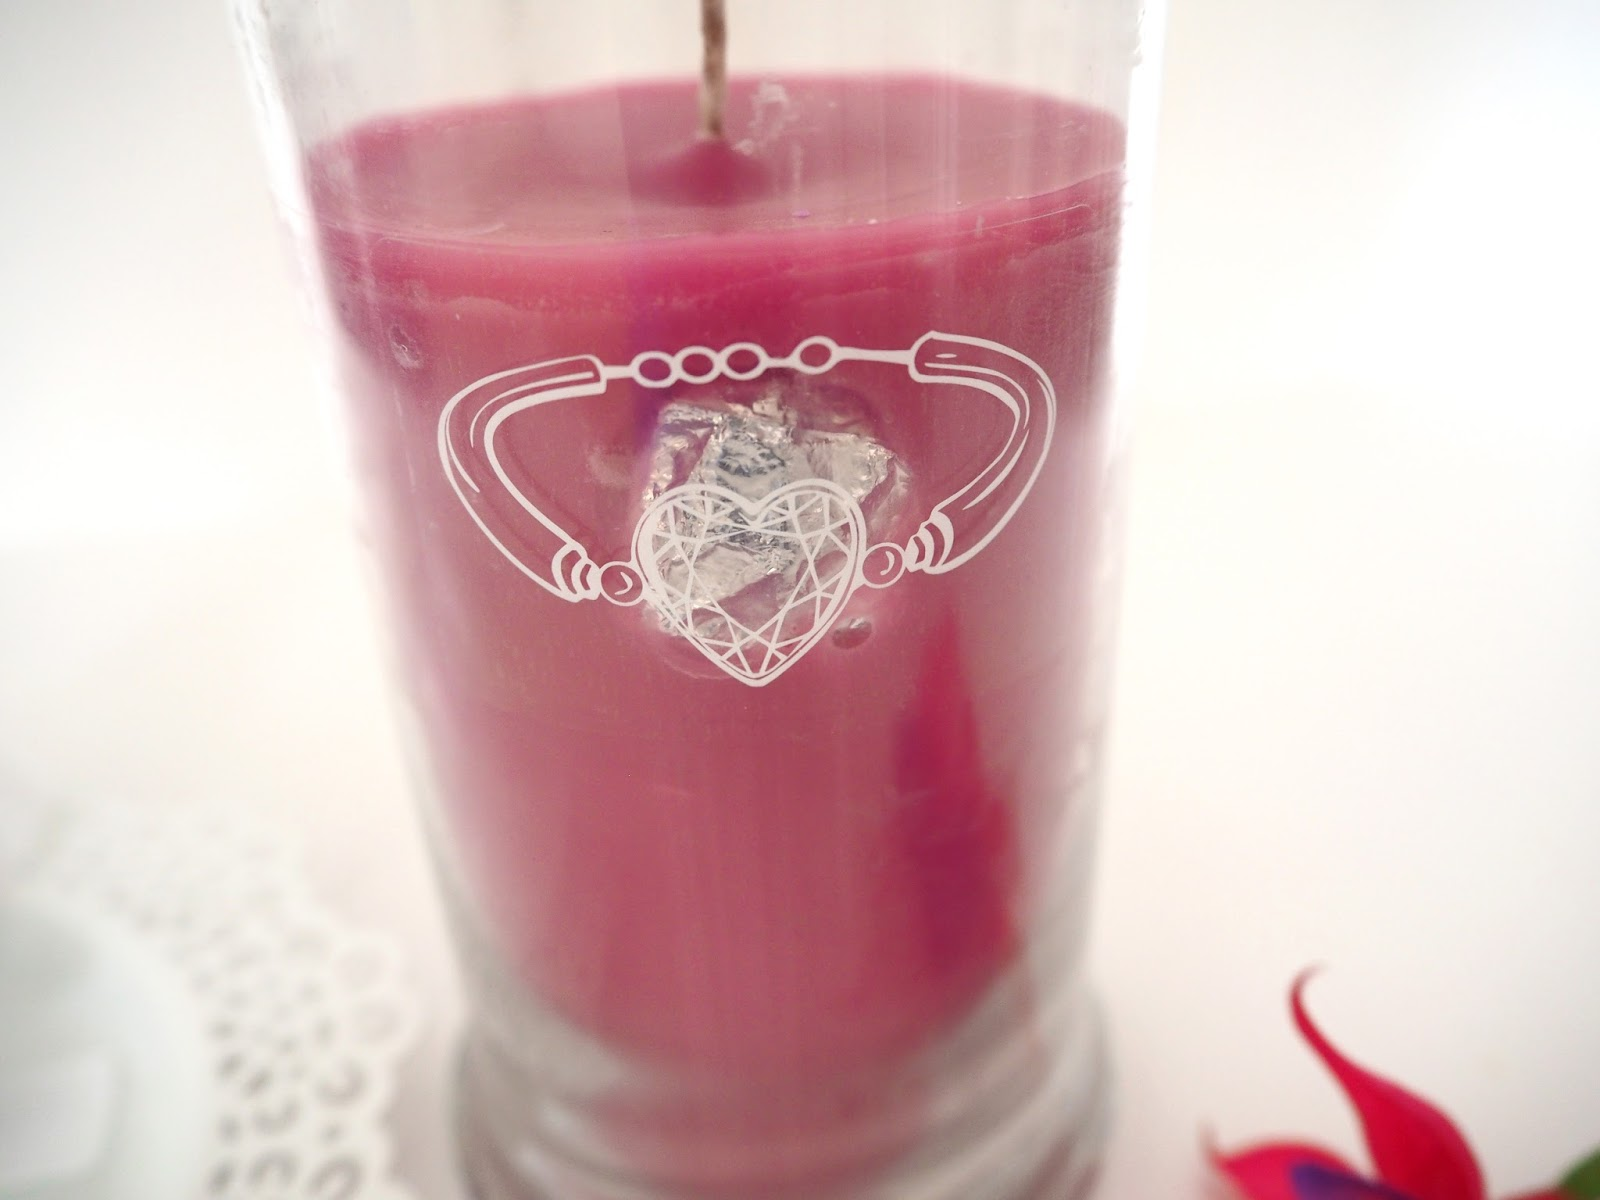 Jewel Candle Review & Giveaway, Katie Kirk Loves, Candle Review, Fragranced Candles, Scented Candles, Lifestyle Blogger, Candle Blogger, Jewellery Inside a Candle